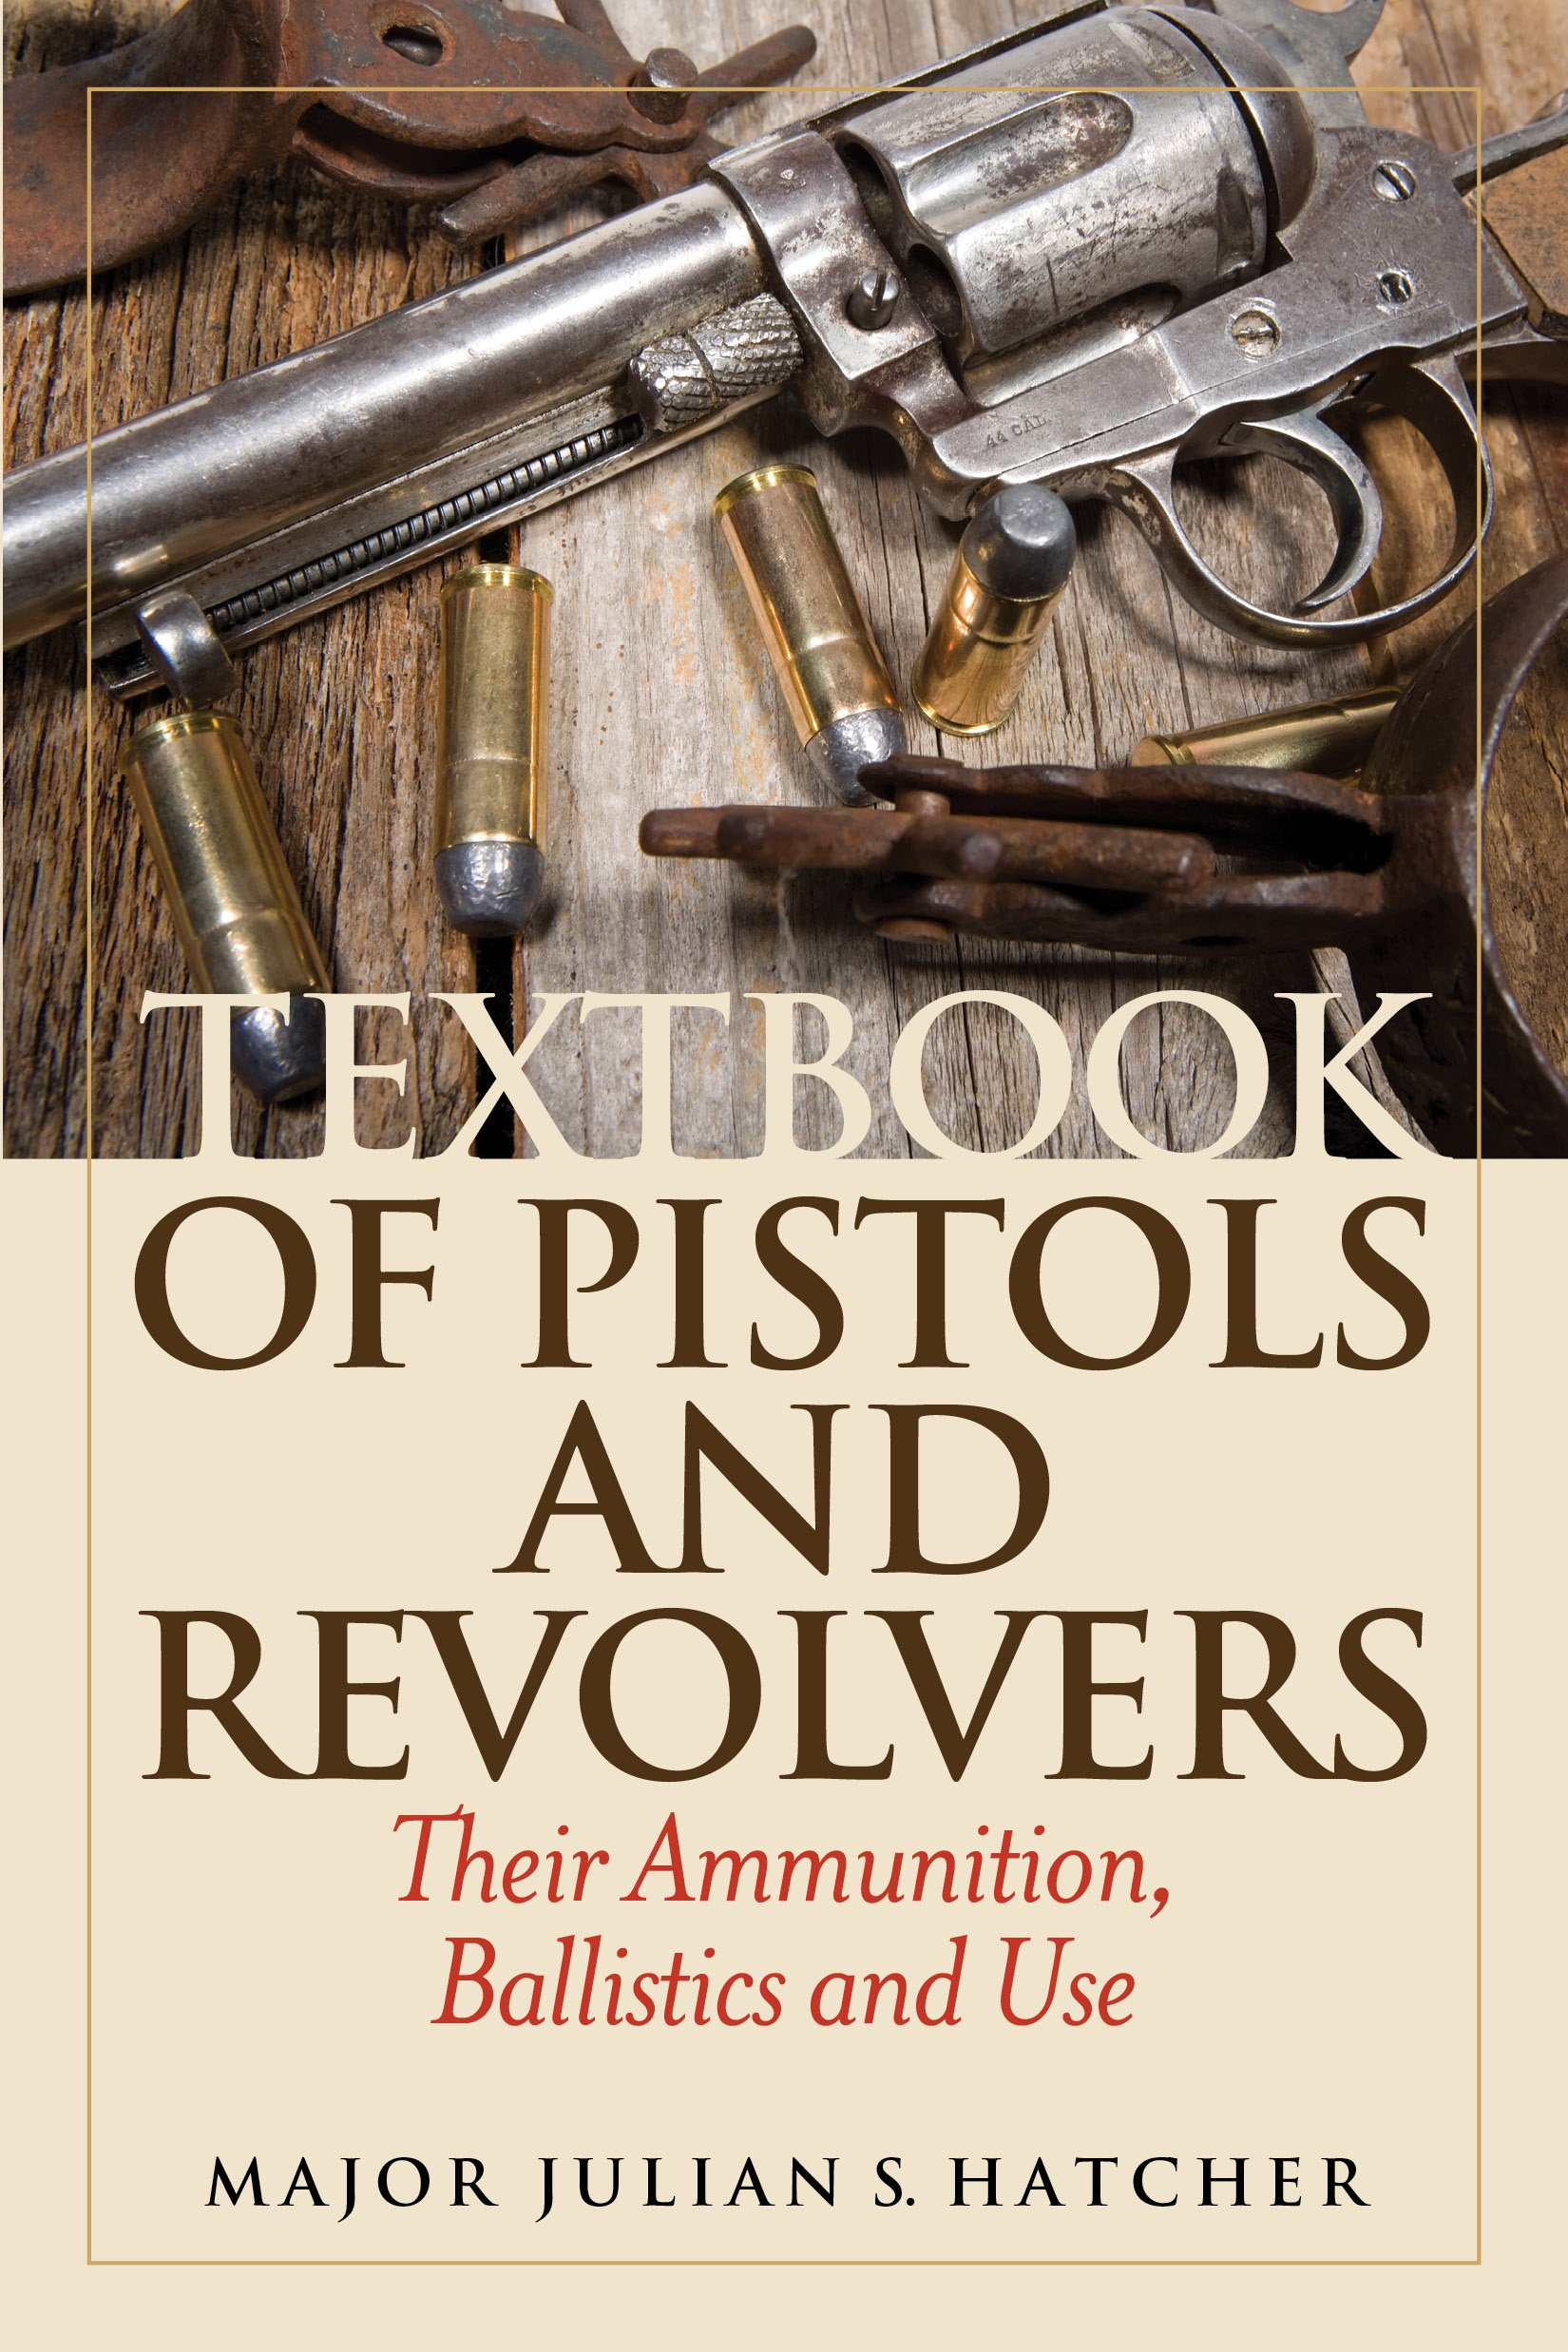 Textbook of Pistols and Revolvers: Their Ammunition, Ballistics and Use by Skyhorse Publishing